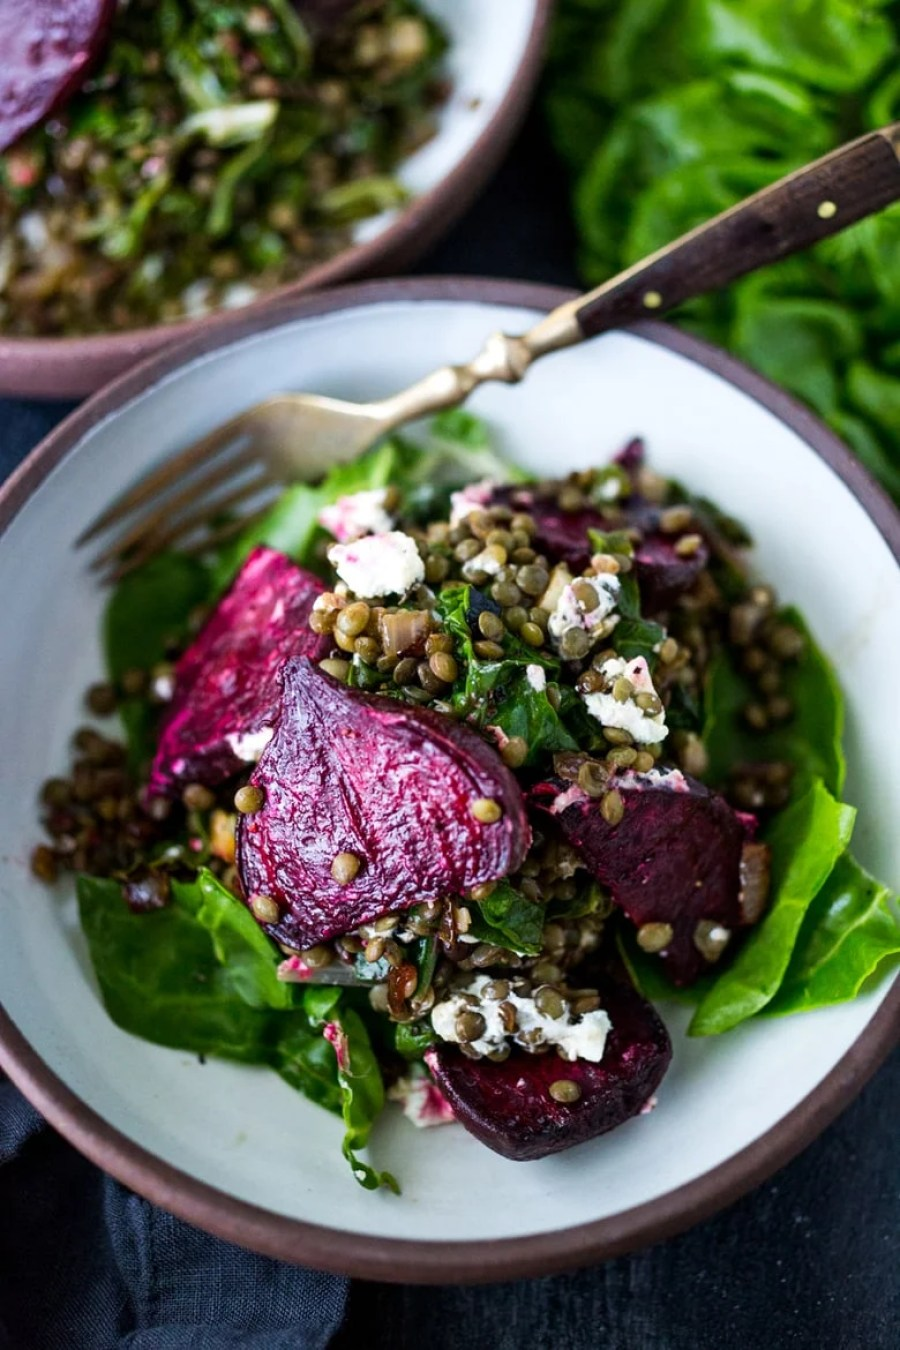 Warm Lentils with Wilted Chard, Roasted Beets and Goat Cheese